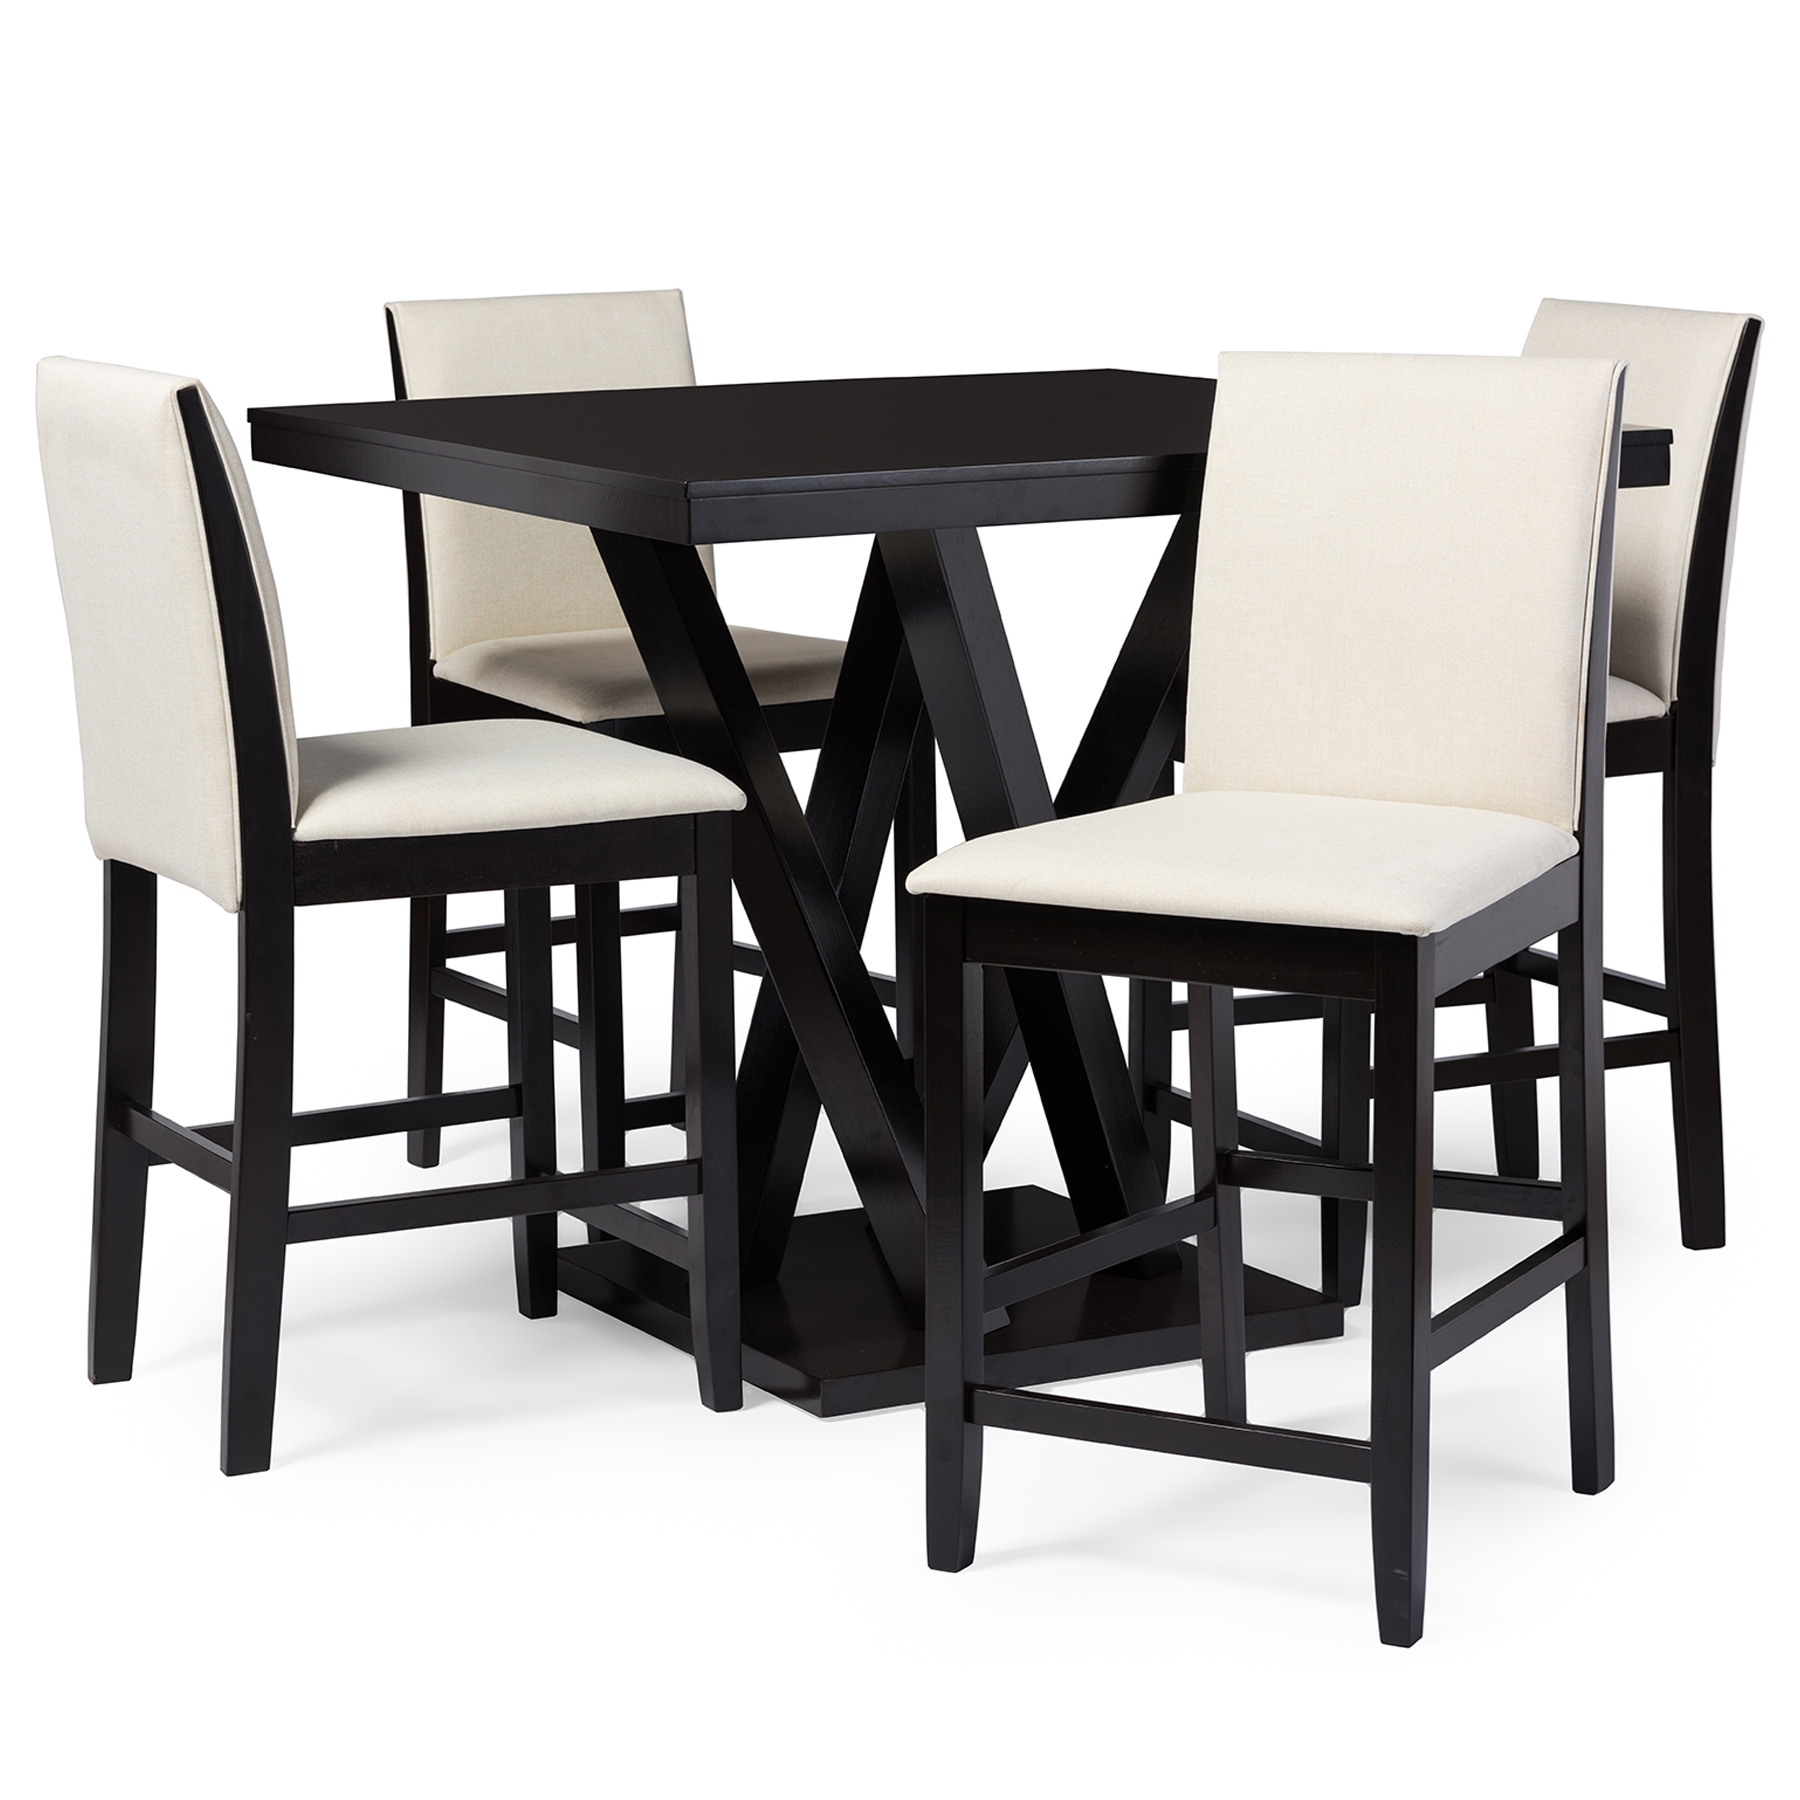 everdon dark brown 5 piece modern pub table set affordable modern design baxton studio